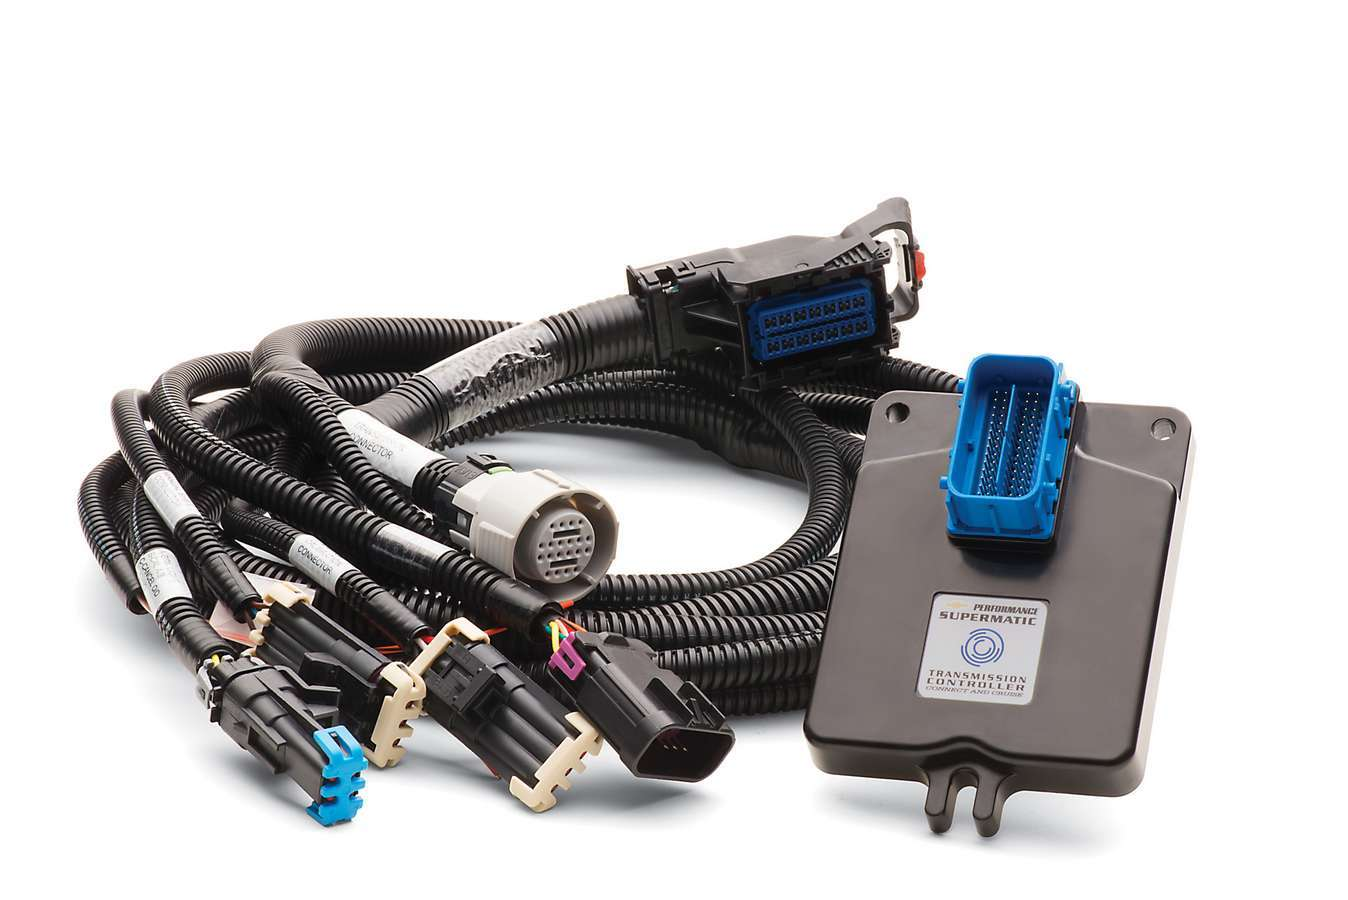 Chevrolet Performance 19302405 Transmission Controller, Controller / Harness / Software Included, Programmable, 4L60E, Kit